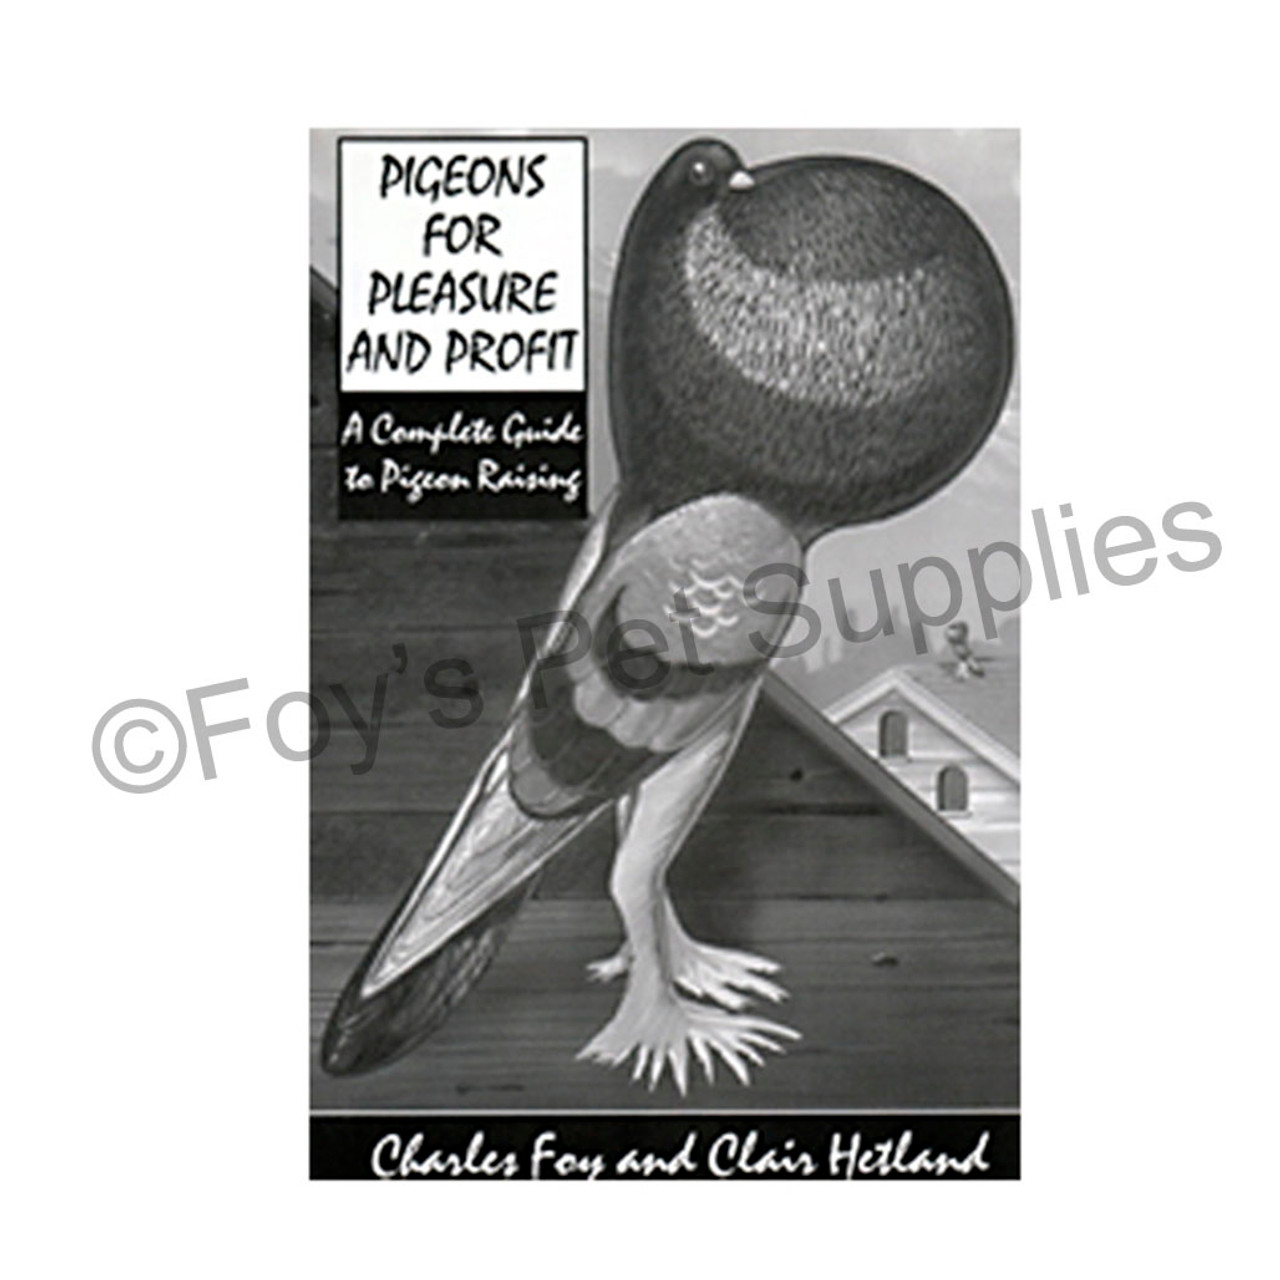 Pigeons For Pleasure And Profit